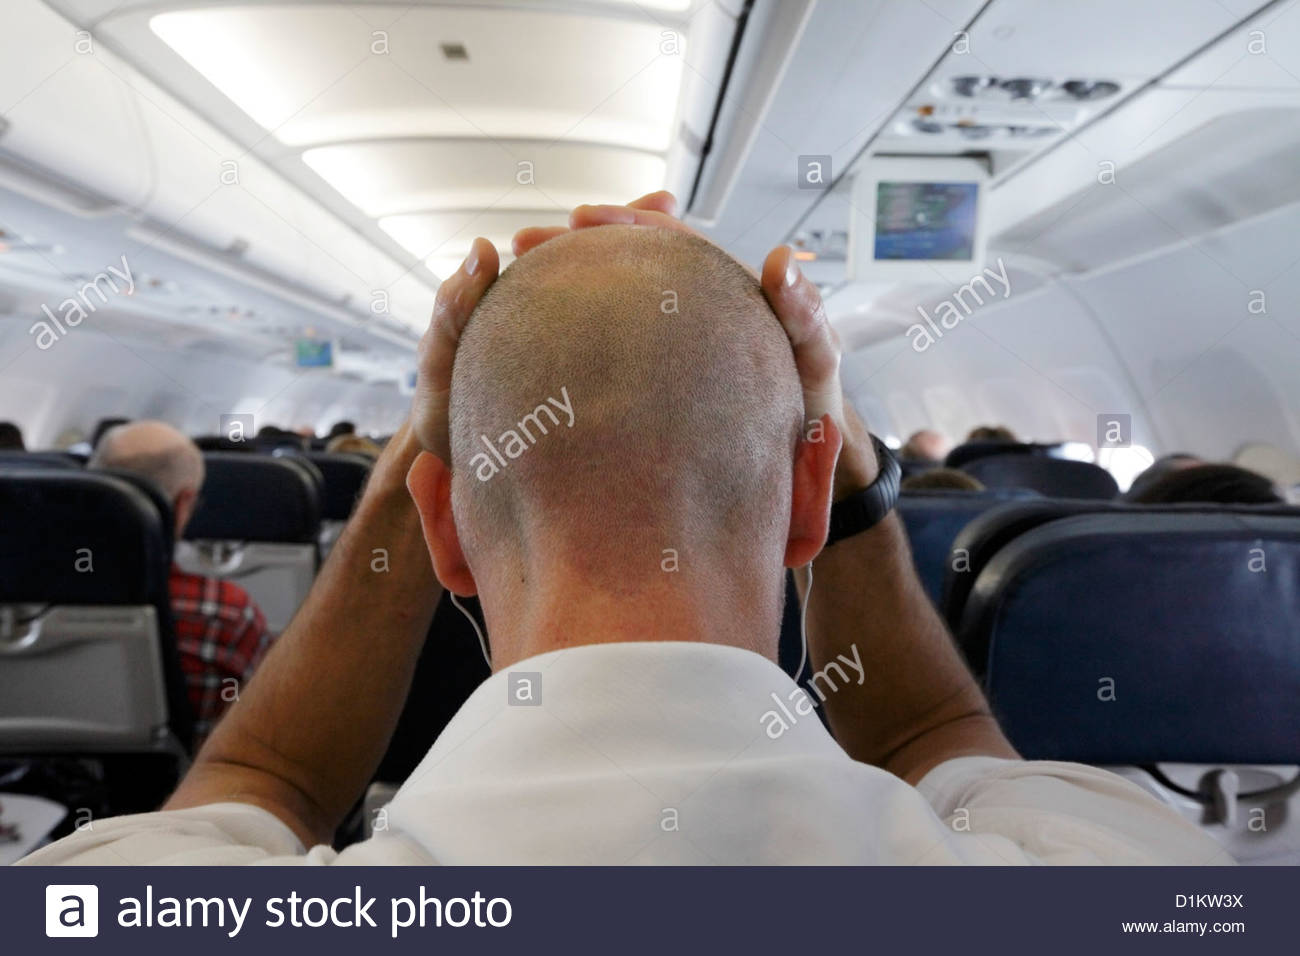 passenger in airplane feeling unwell - Stock Image